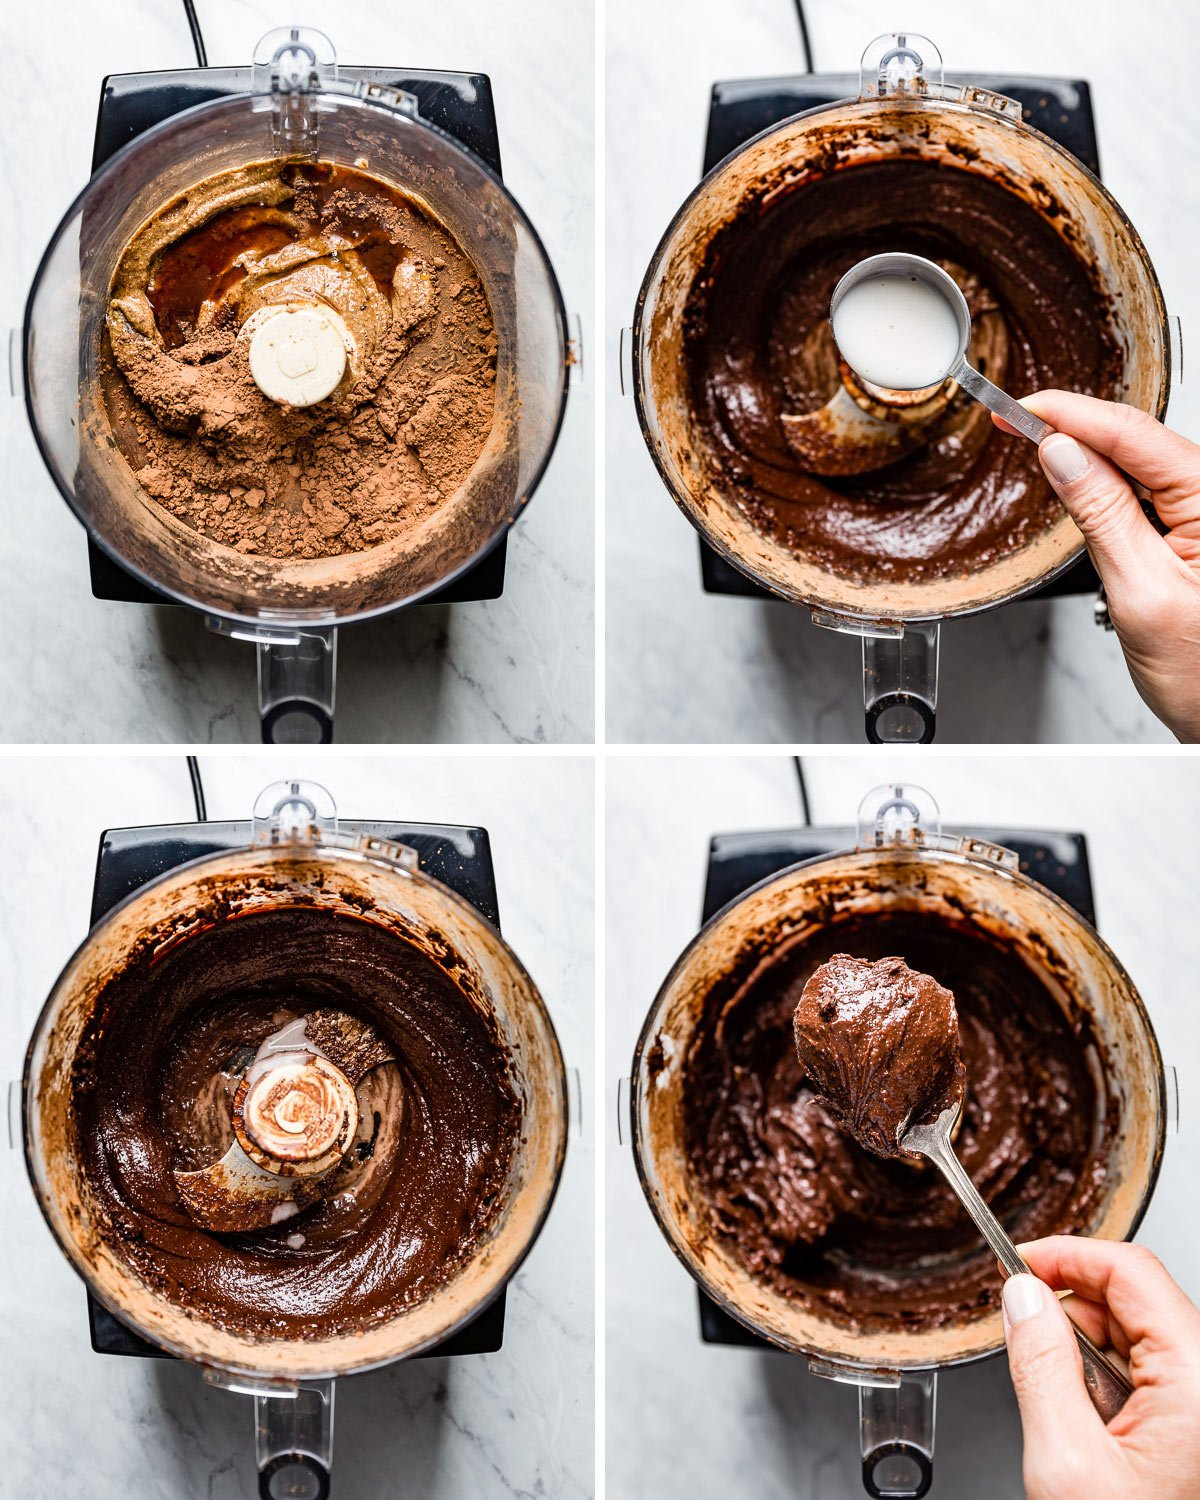 Four images showing how to make the recipe step by step